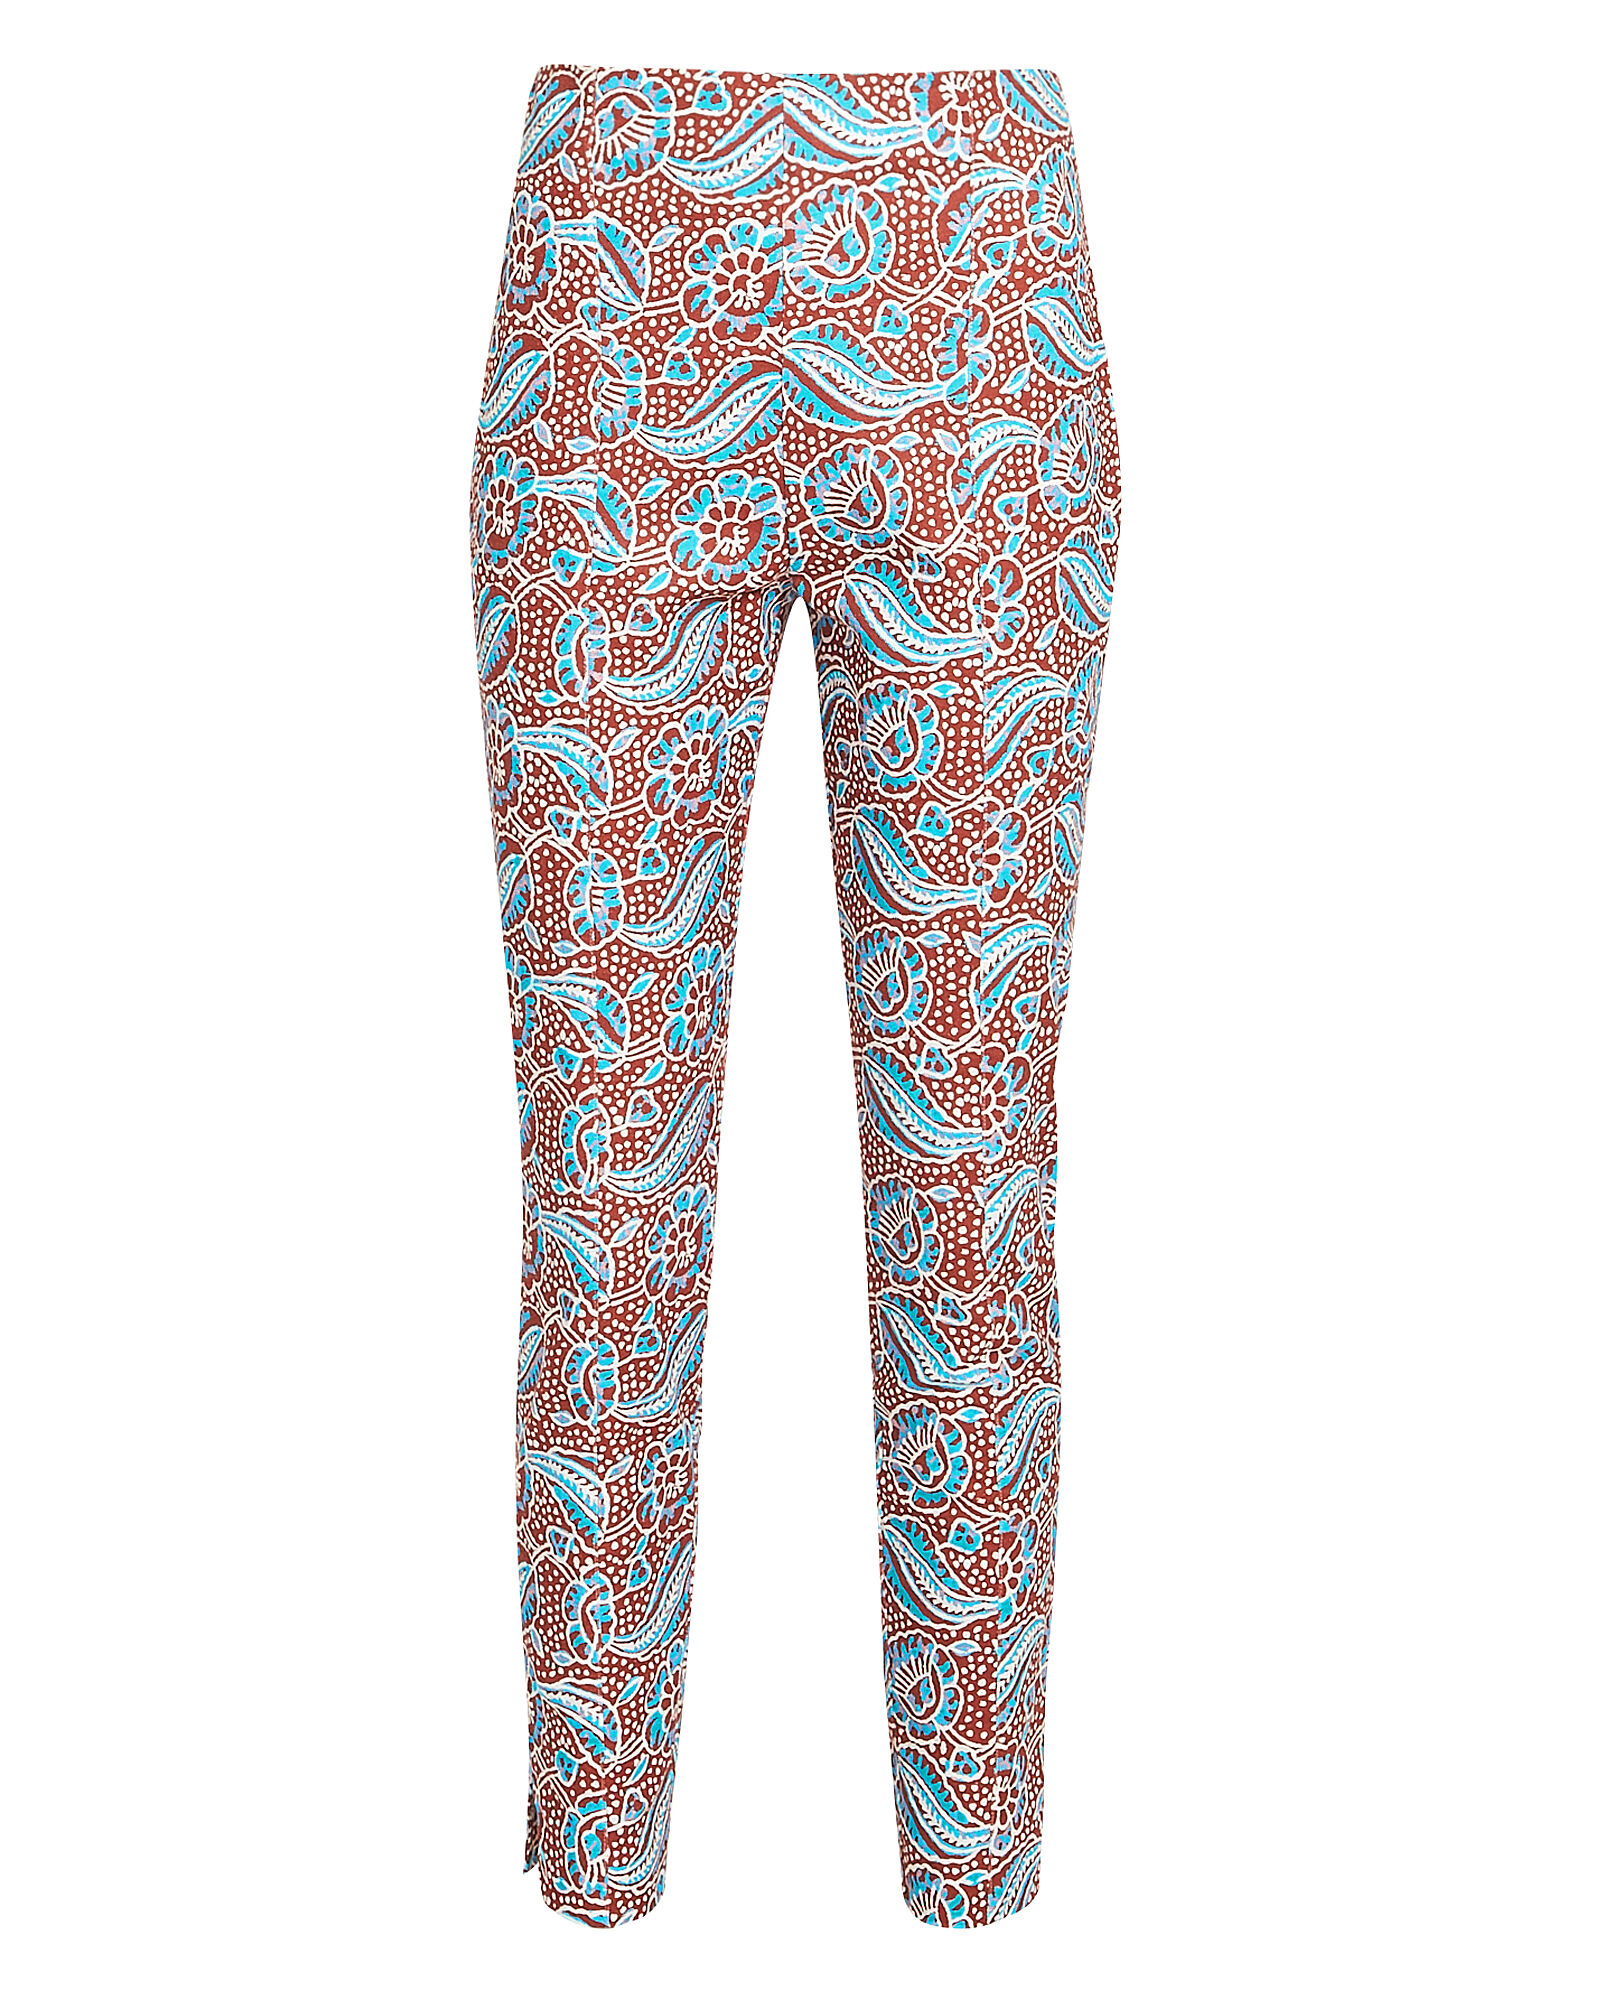 Honolulu Skinny Cropped Pants, MULTI, hi-res